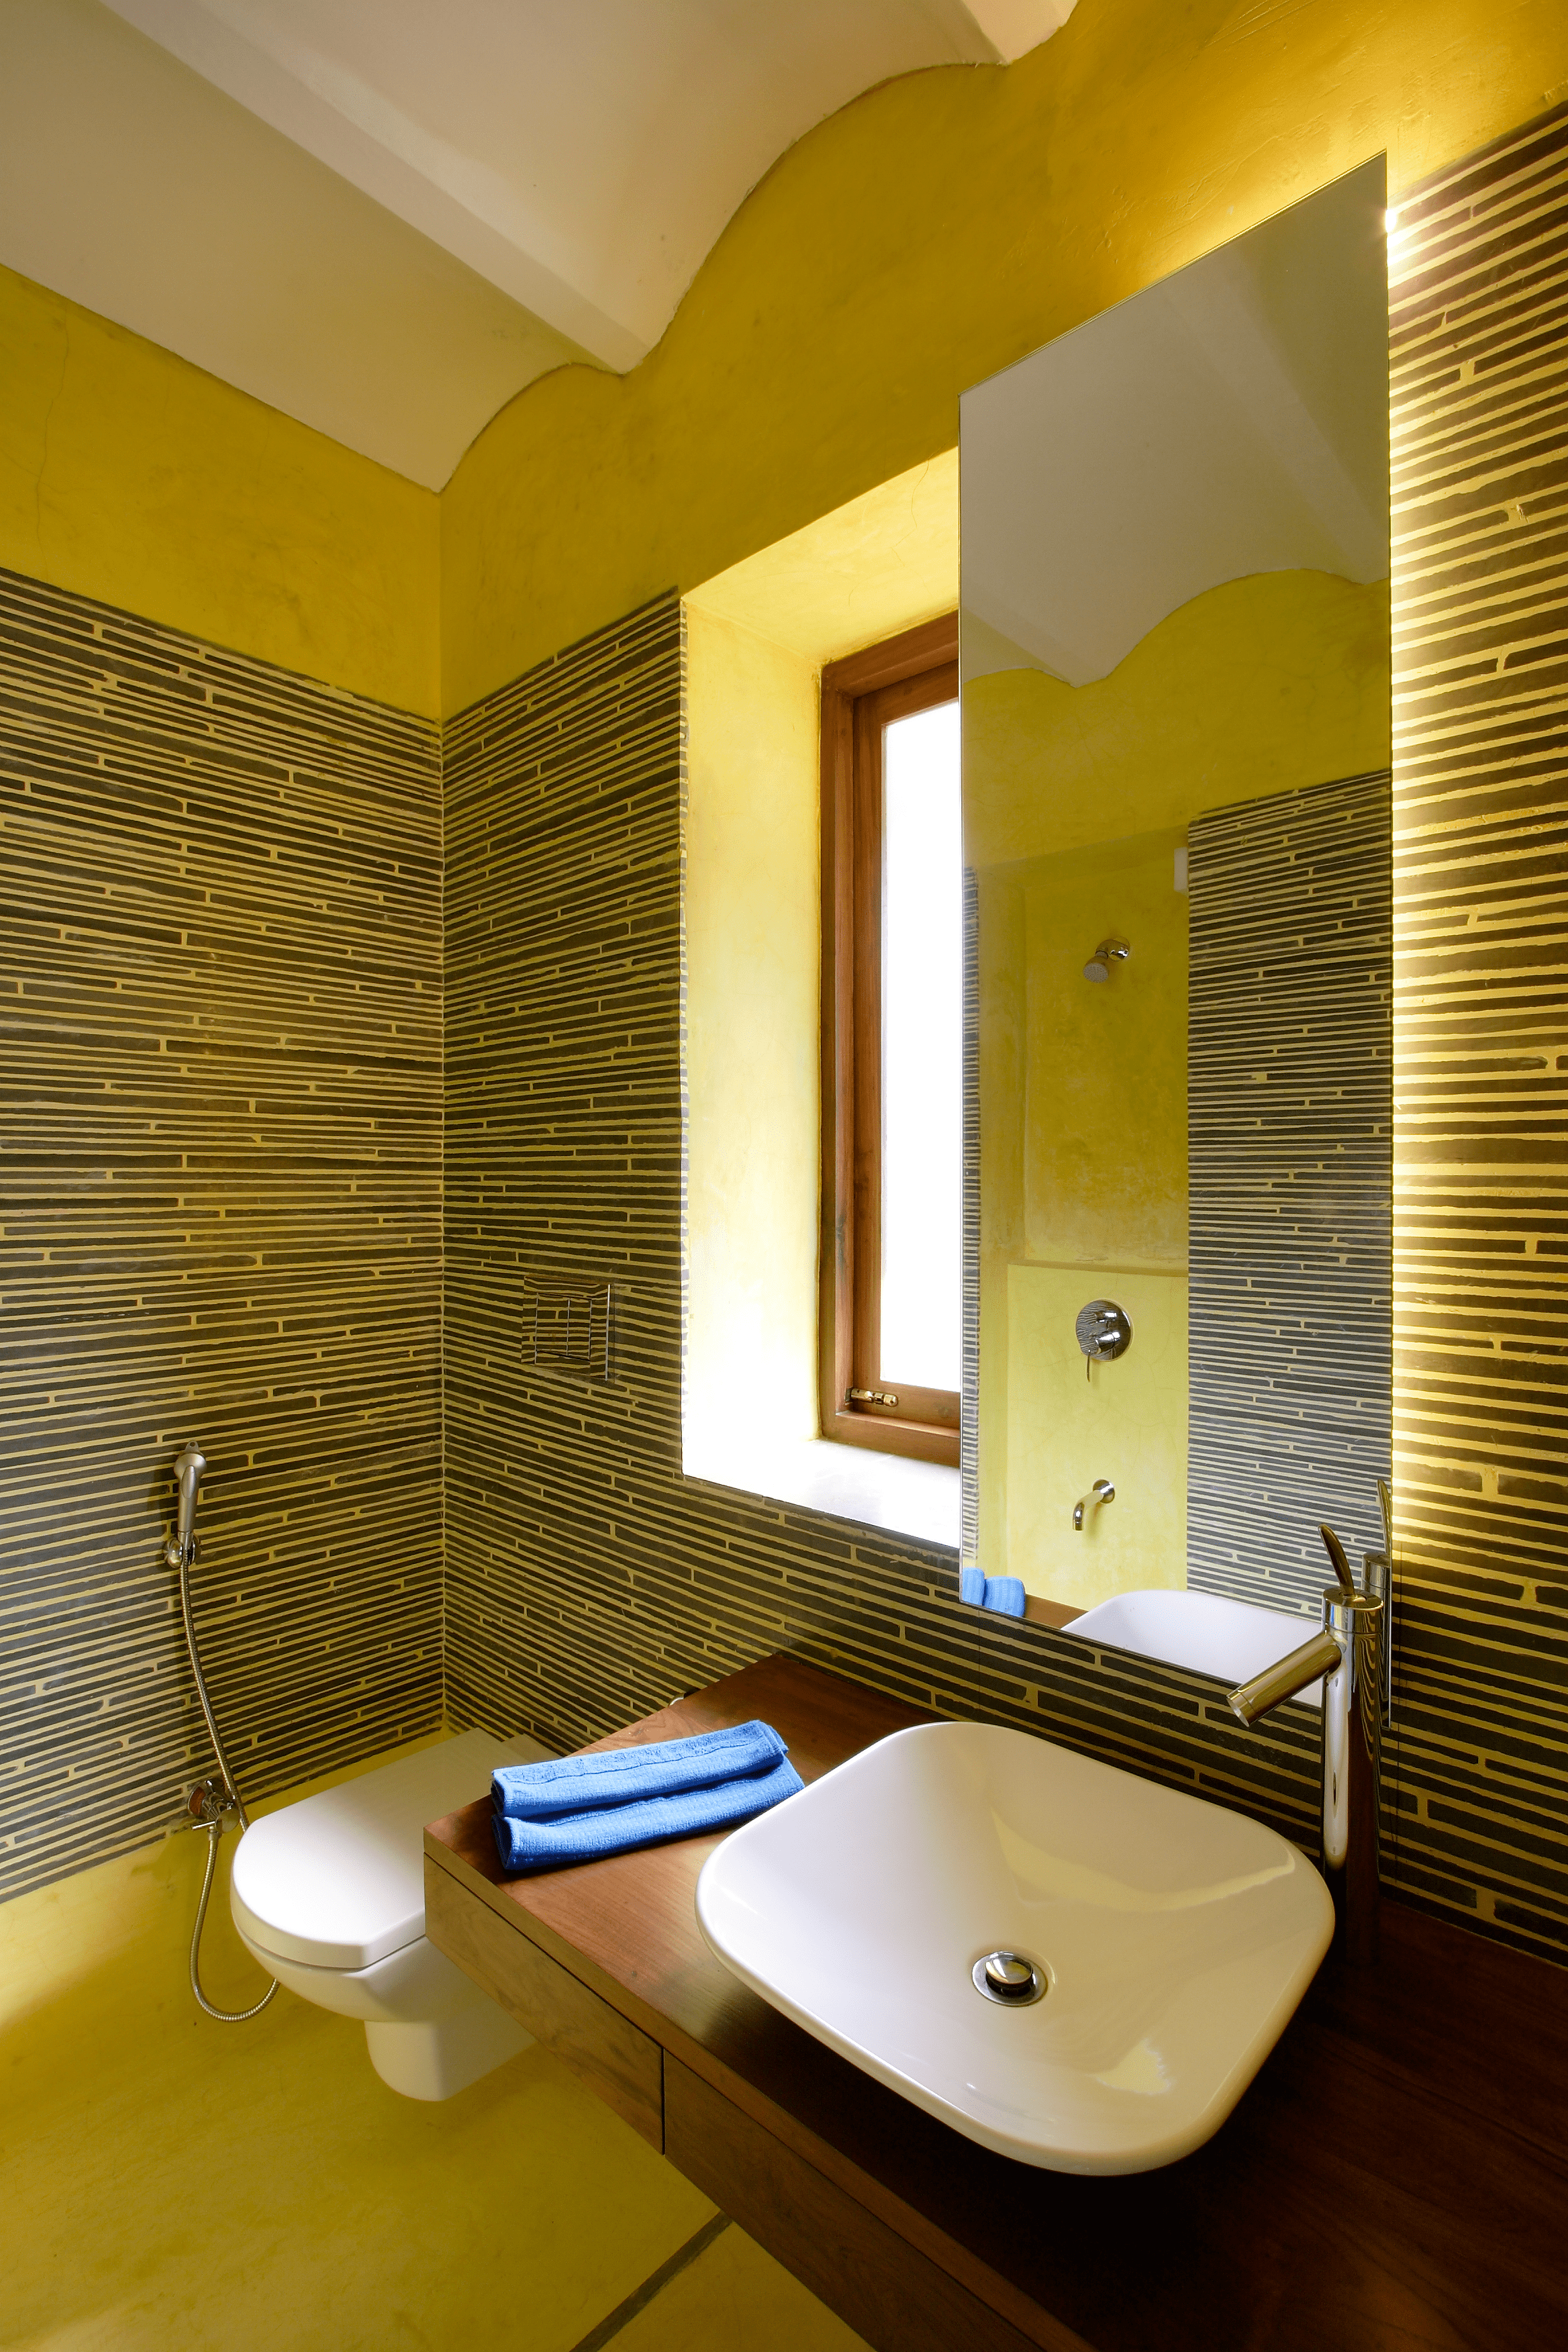 Maximizing style with minimal space kota stone from after laying the floor was used as the finishing material in the washroom DhrutiVaidya